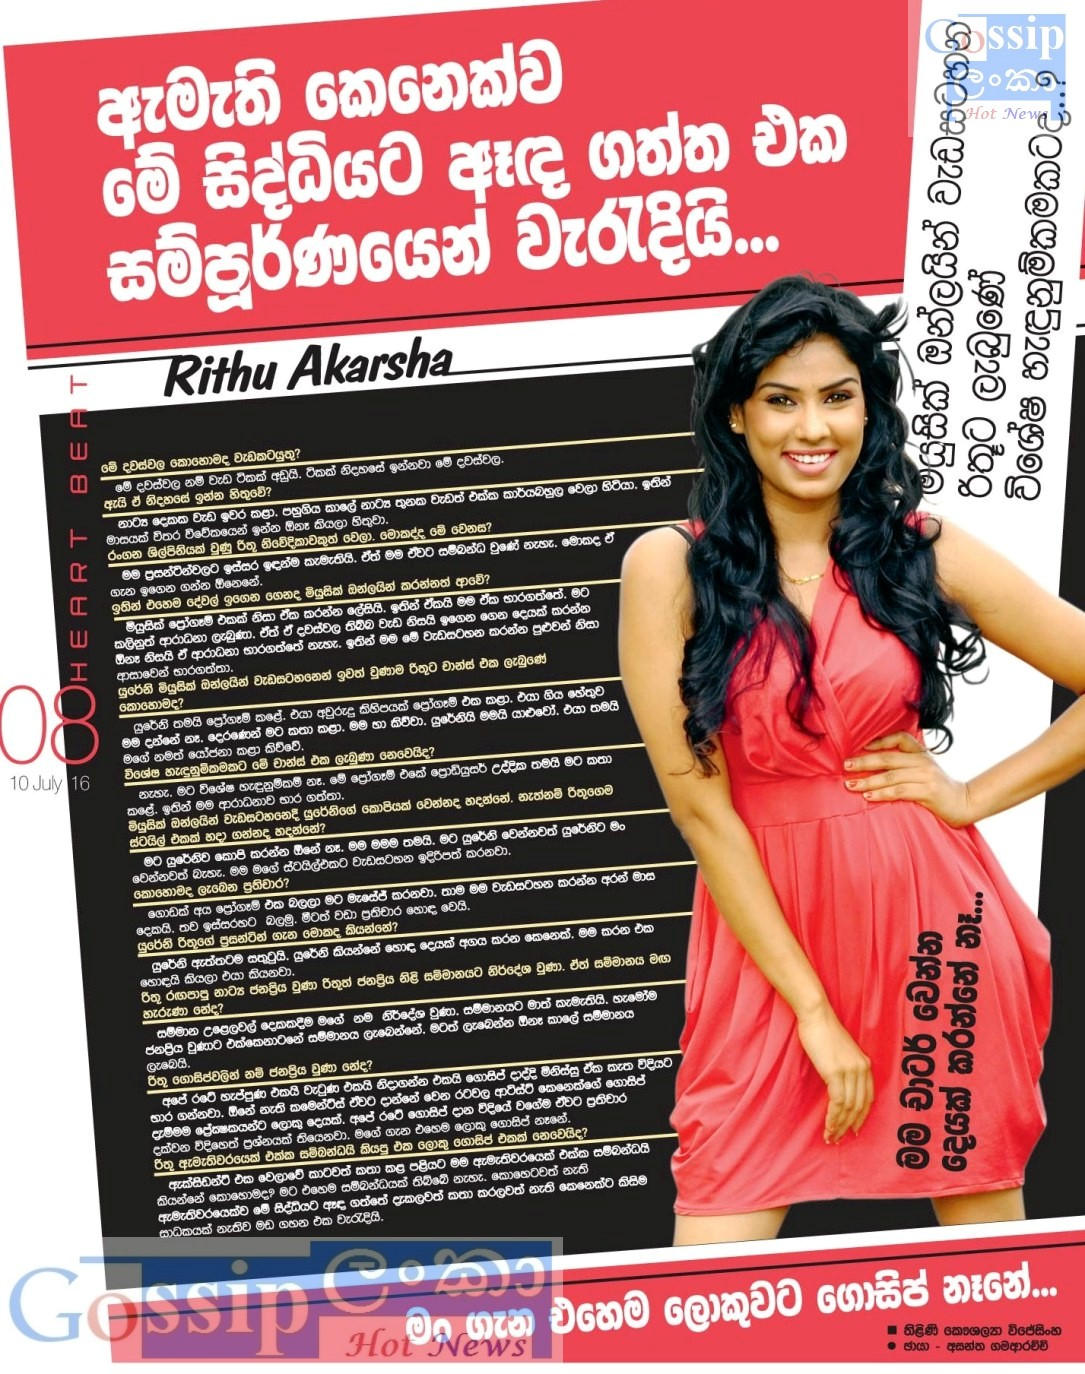 Chat With Sri Lankan Teledrama Actress Rithu Akarsha